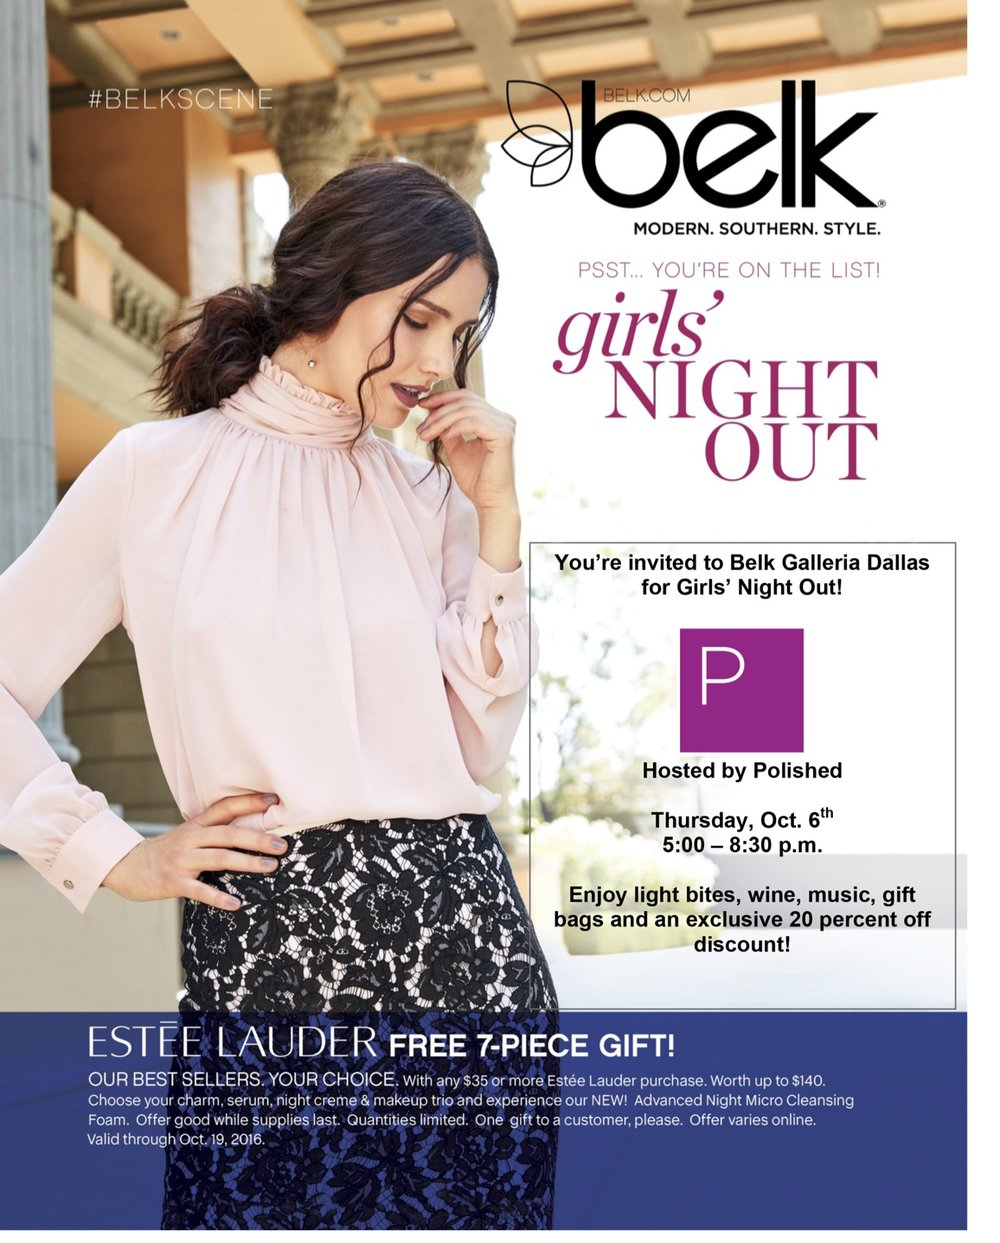 Previous Polished Speaker Catherine Lowe at a Belk Event